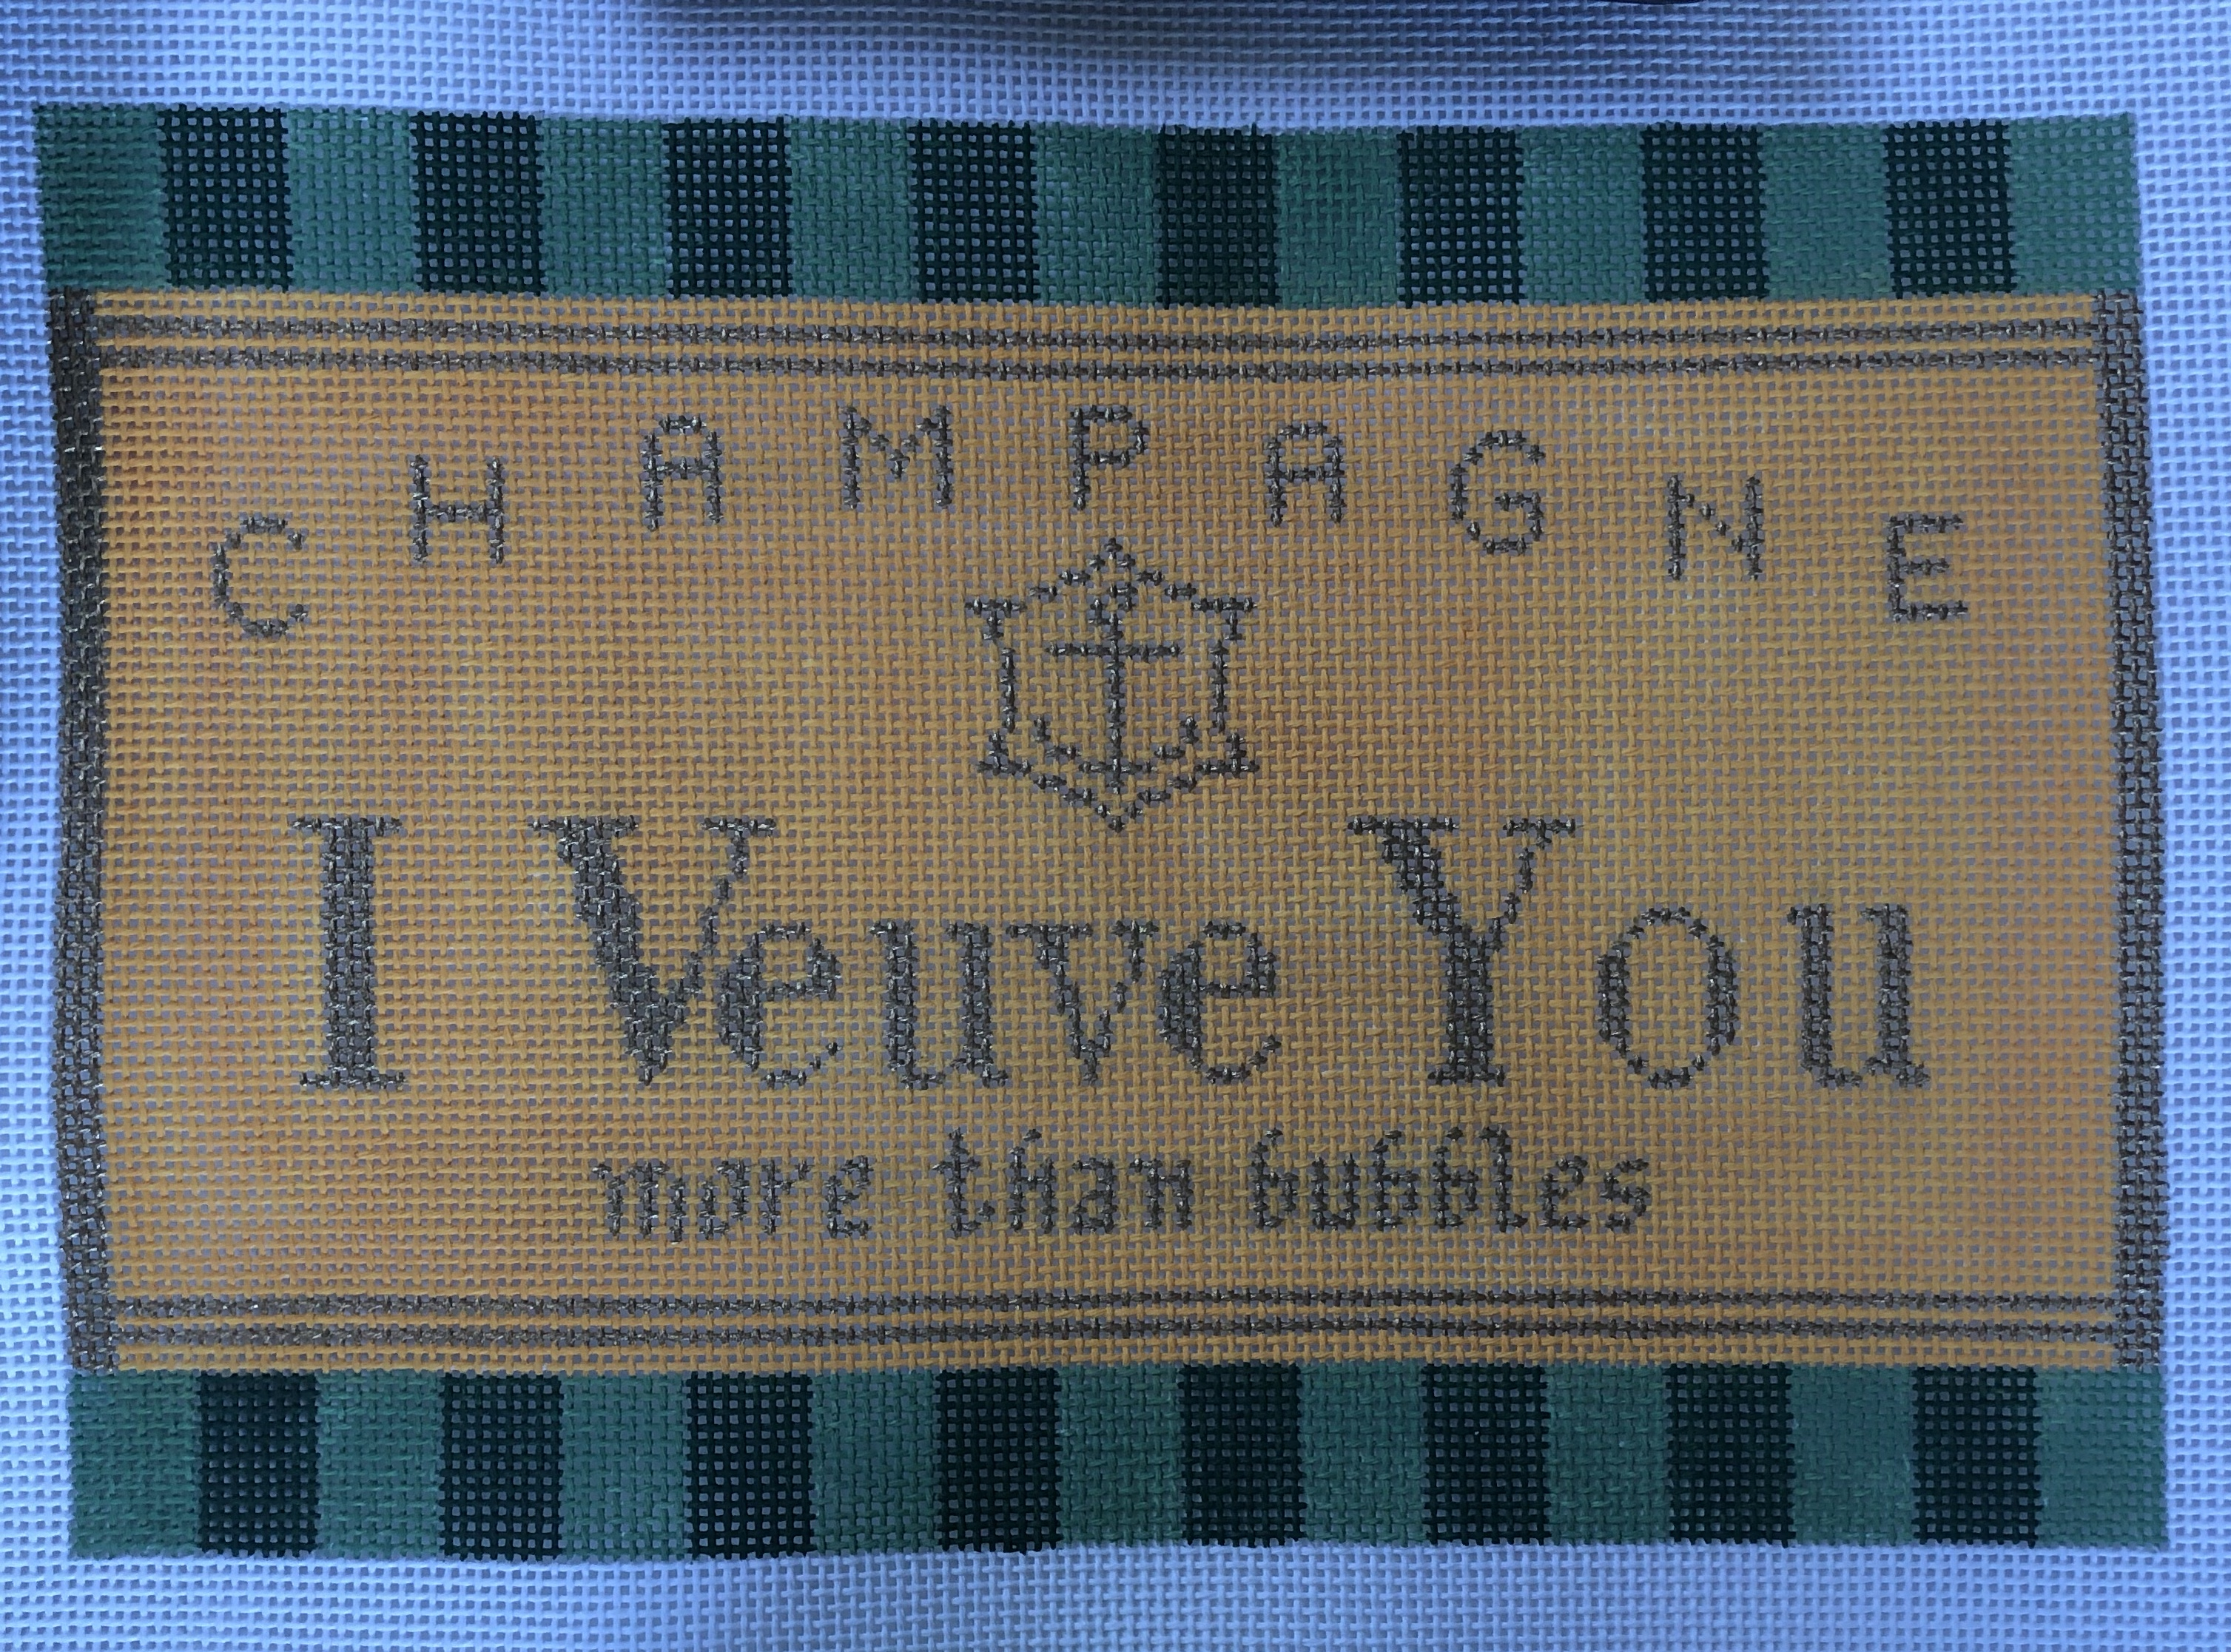 I Veuve You More than Bubbles by Thorn Alexander